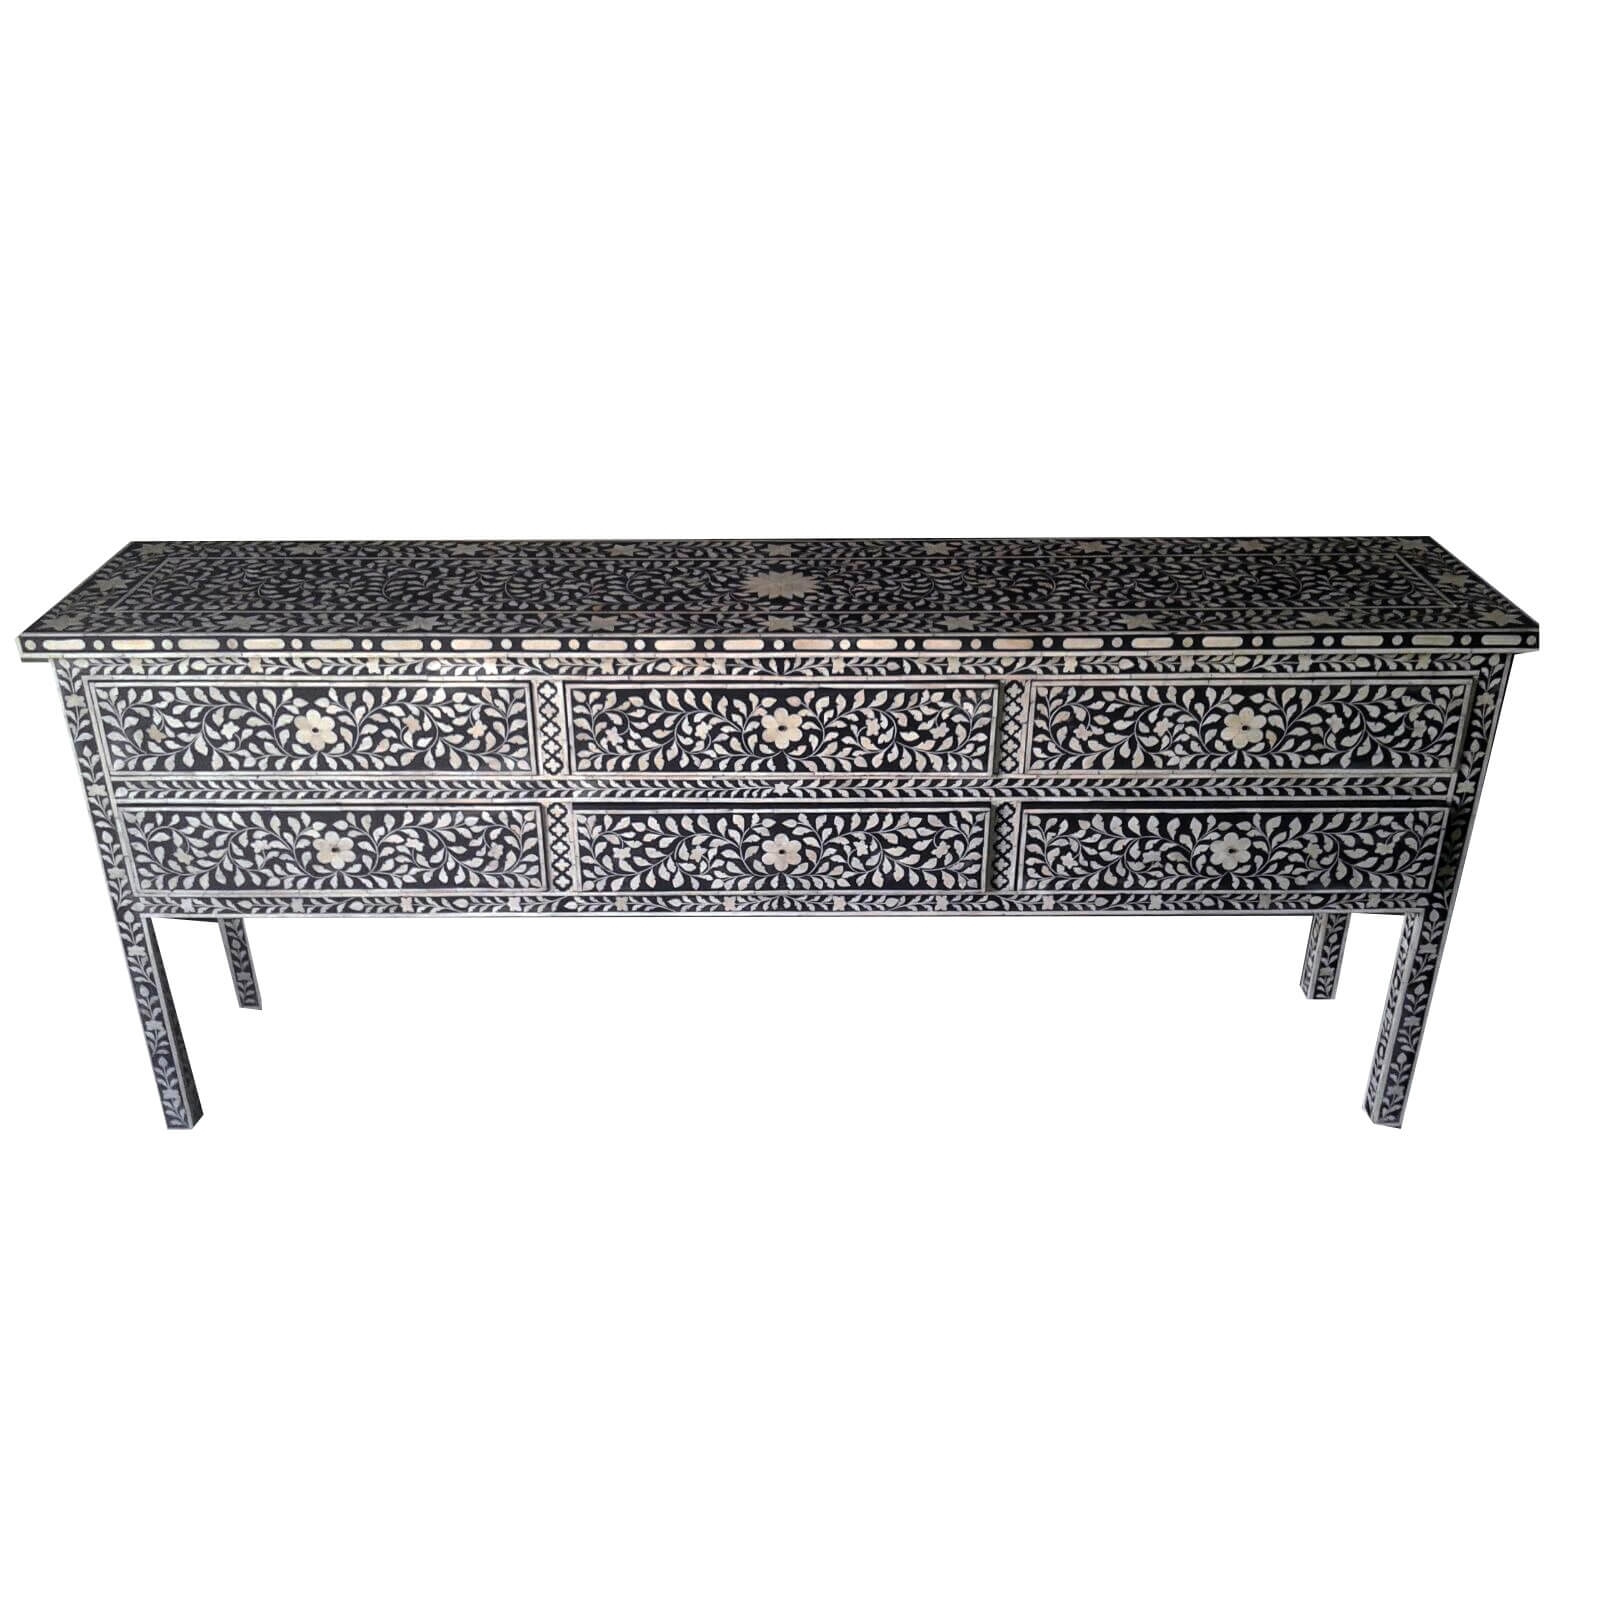 Black Bone Inlay Large Sideboard | Iris Furnishing regarding Geo Pattern Black and White Bone Inlay Sideboards (Image 3 of 30)